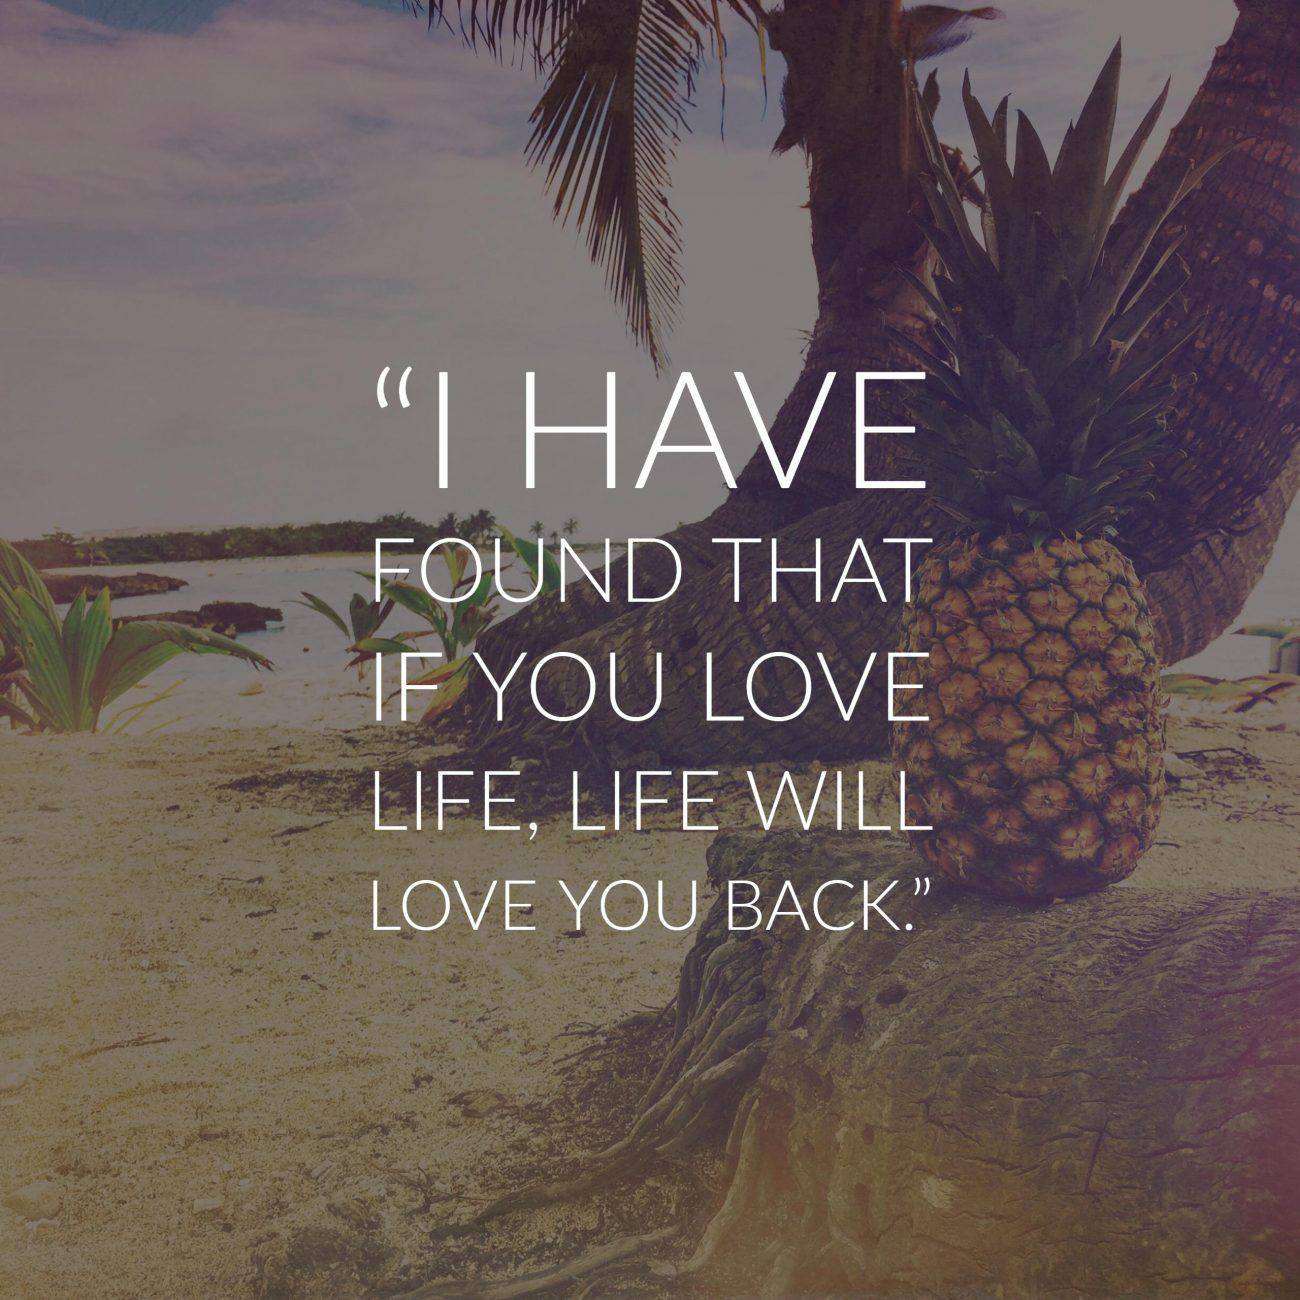 40 Inspirational Quotes About Life And Love